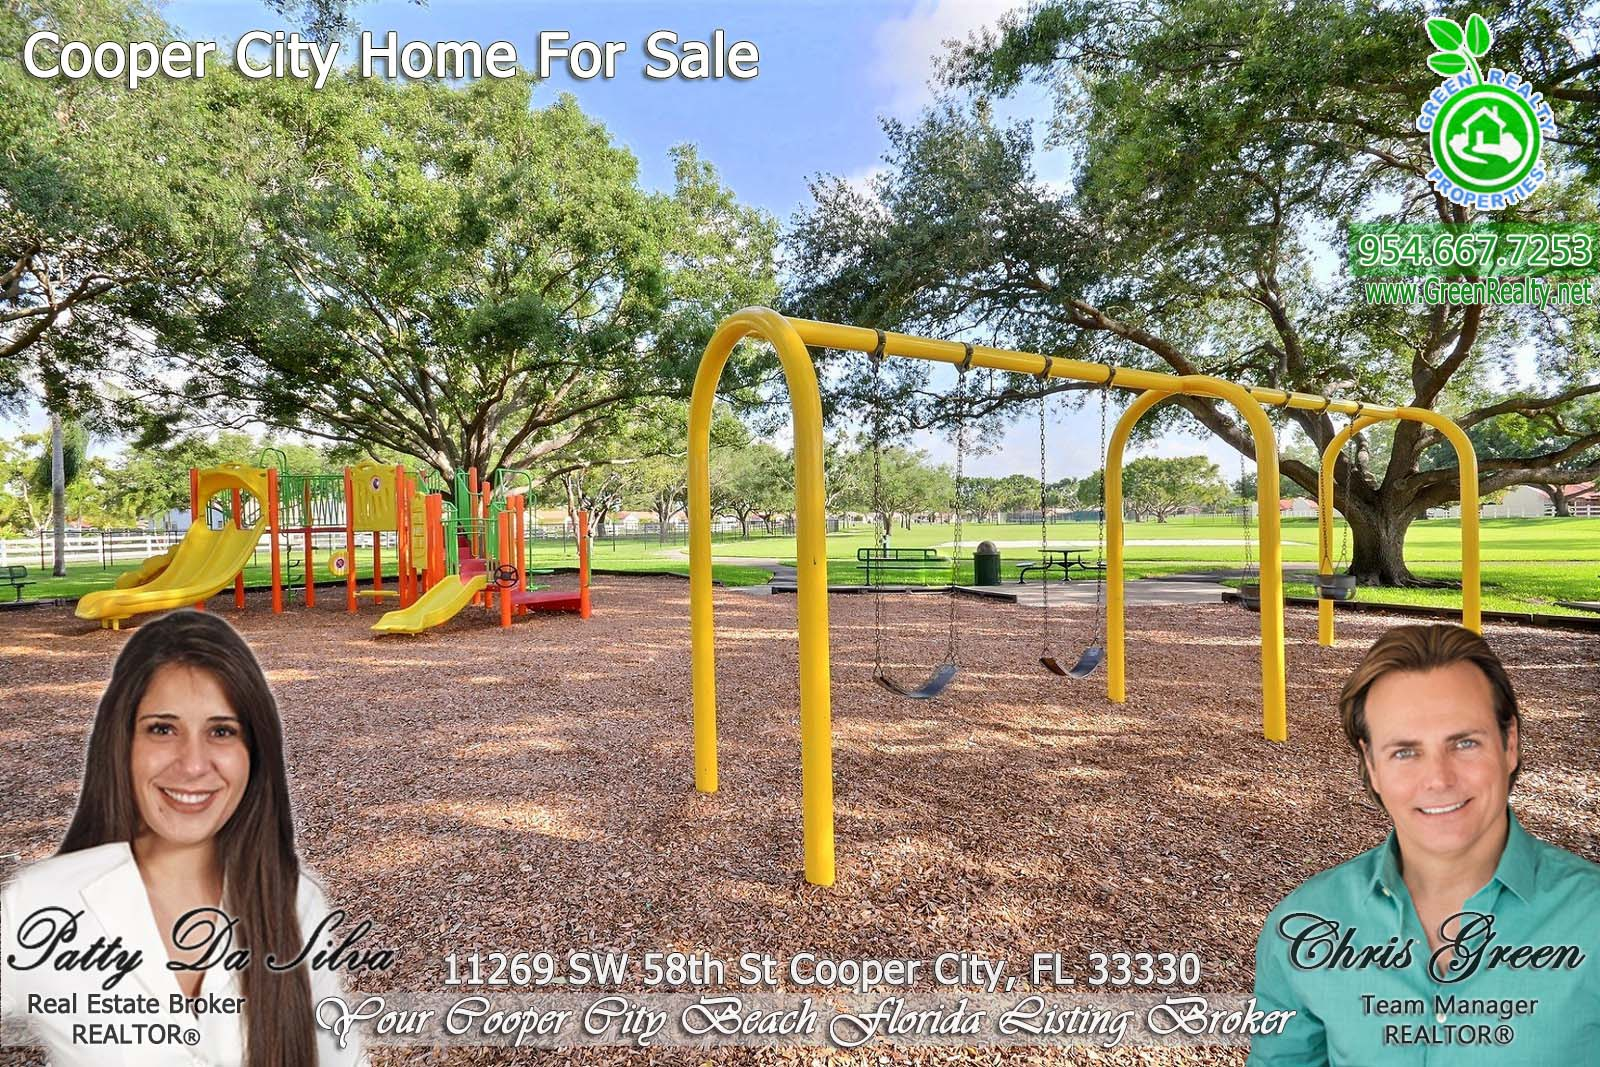 27 Cooper City Real Estate - Villas (7)